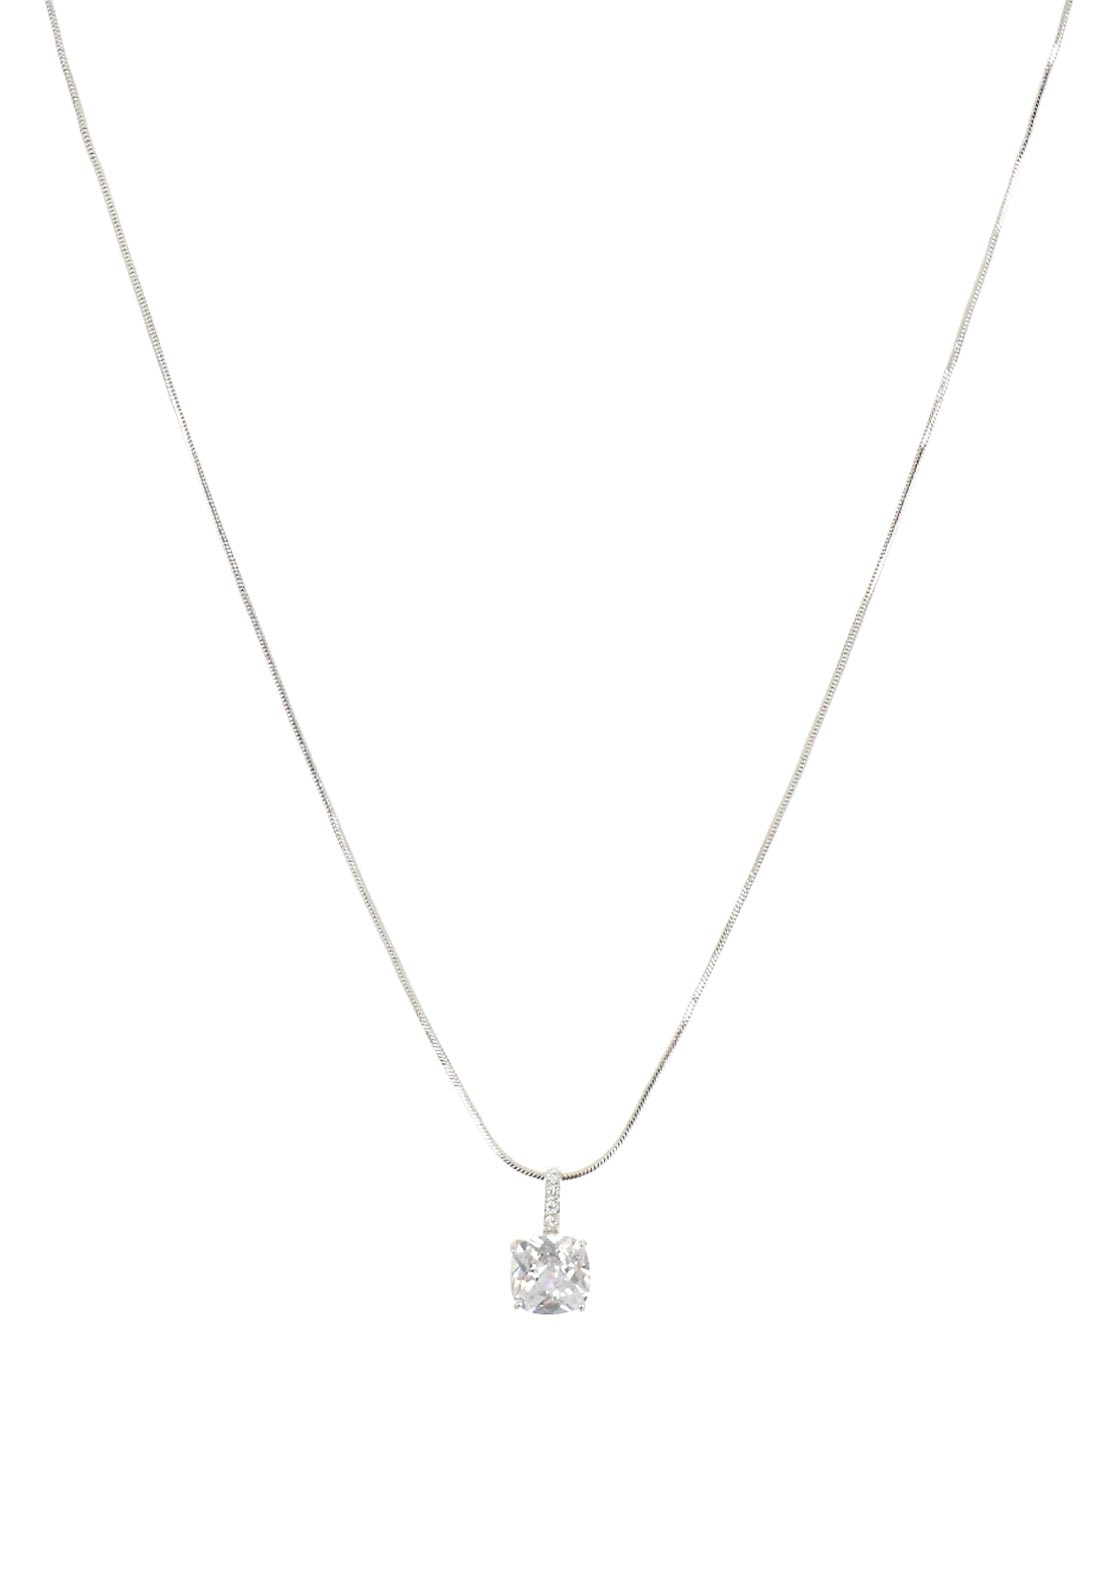 Jewel by absolute diamante pendant necklace silver mcelhinneys jewel by absolute diamante pendant necklace silver aloadofball Images